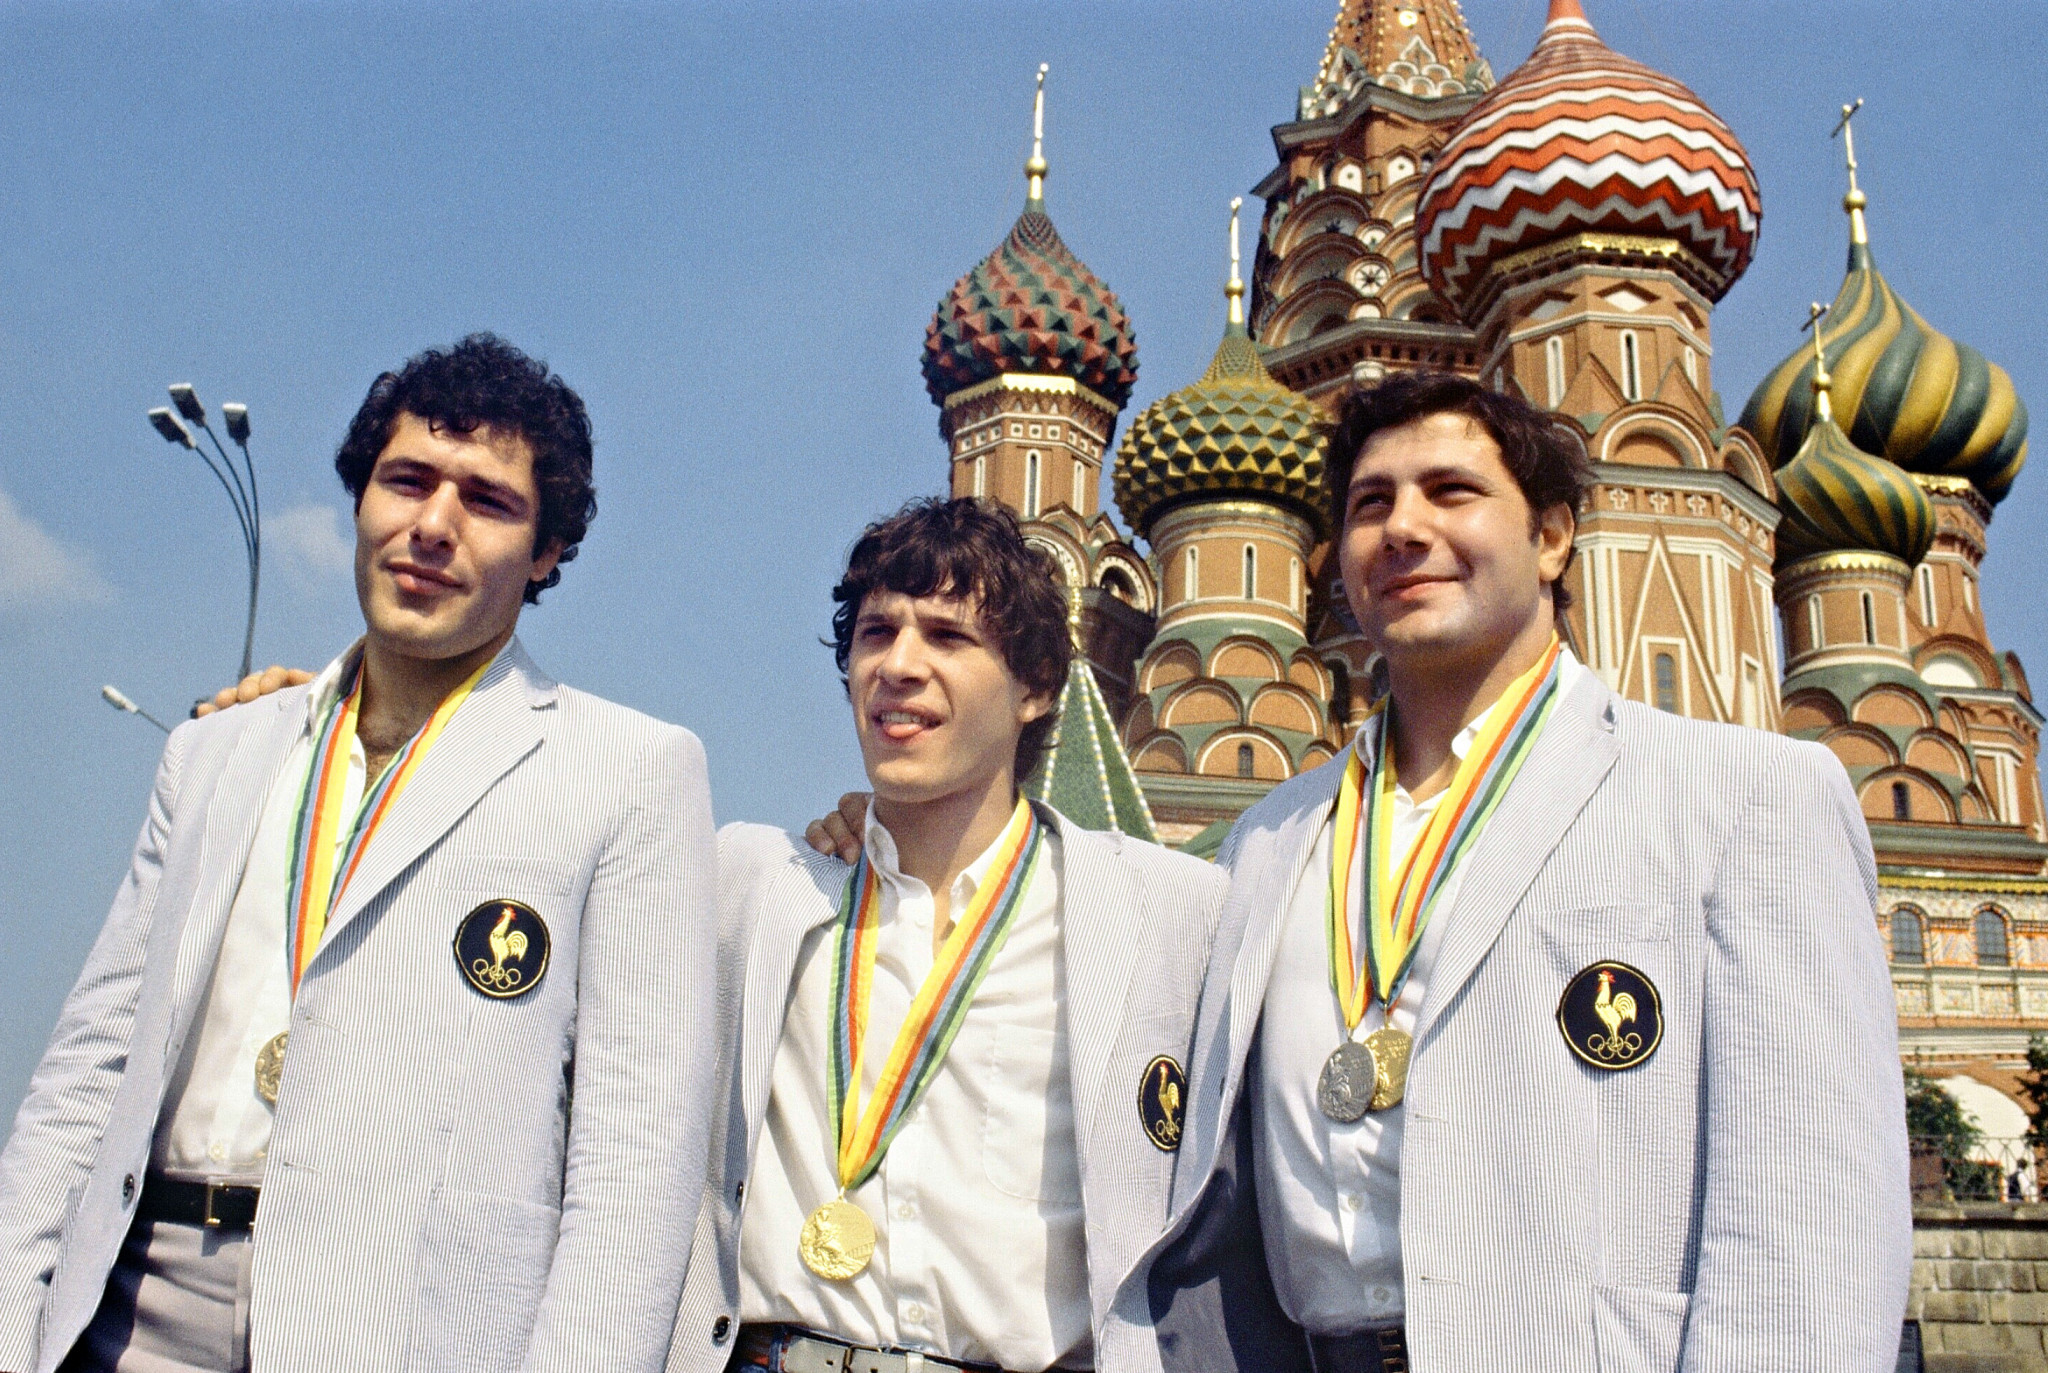 French judokas, medalists at the1980 Olympic Games face the cameras in front of Saint-Basil, Moscow Red Square ©Getty Images